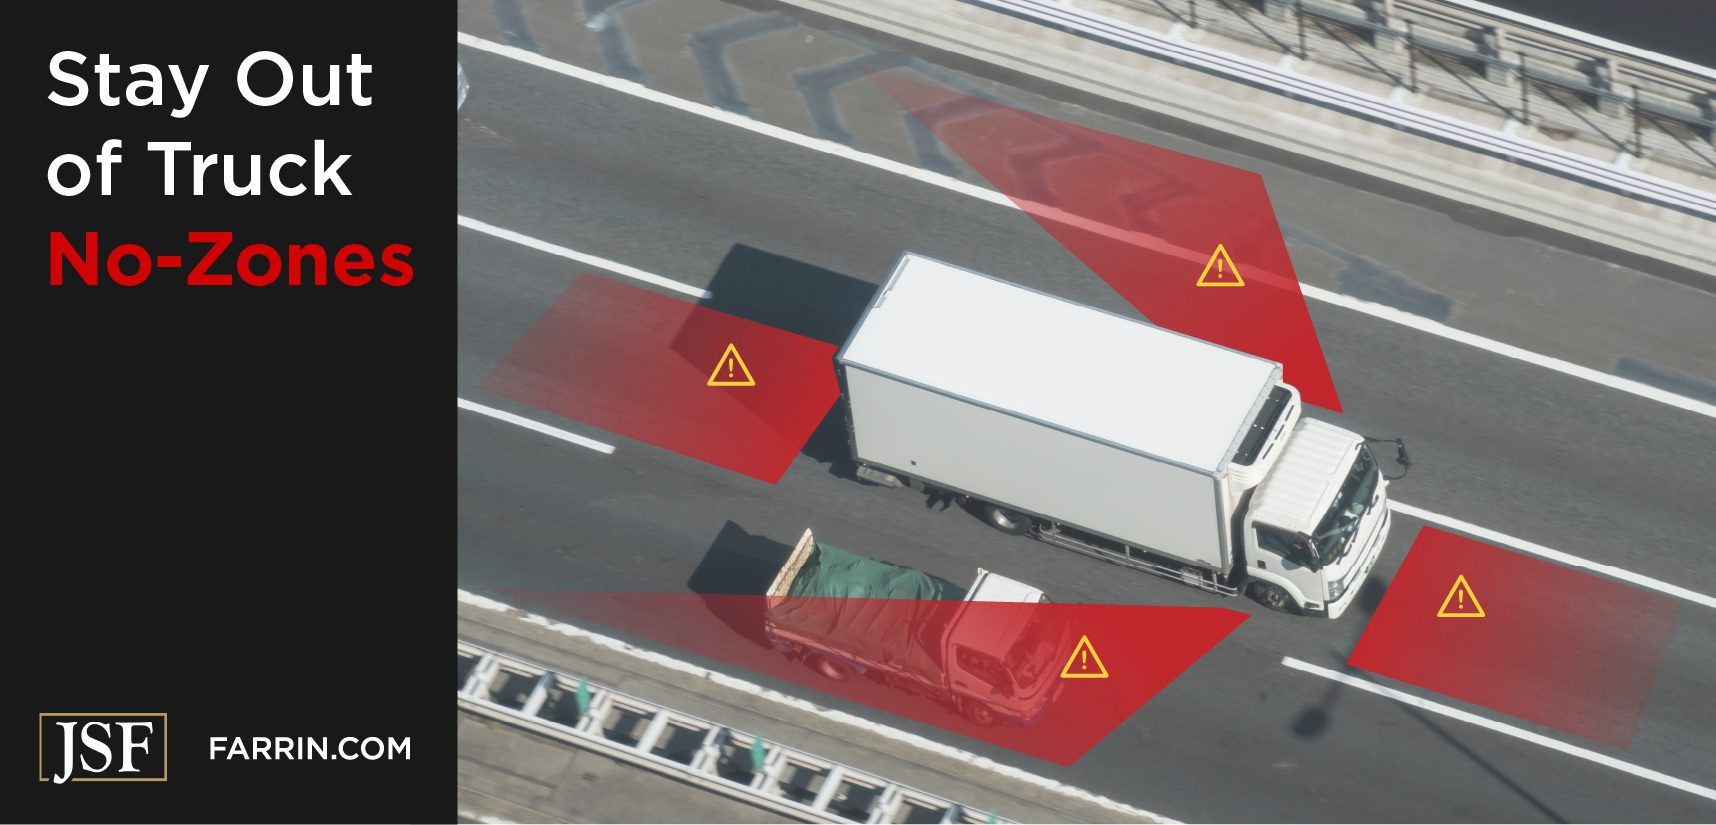 """Truck """"No-Zones"""" are the four dangerous blind spots in front, behind & on either side of the truck."""